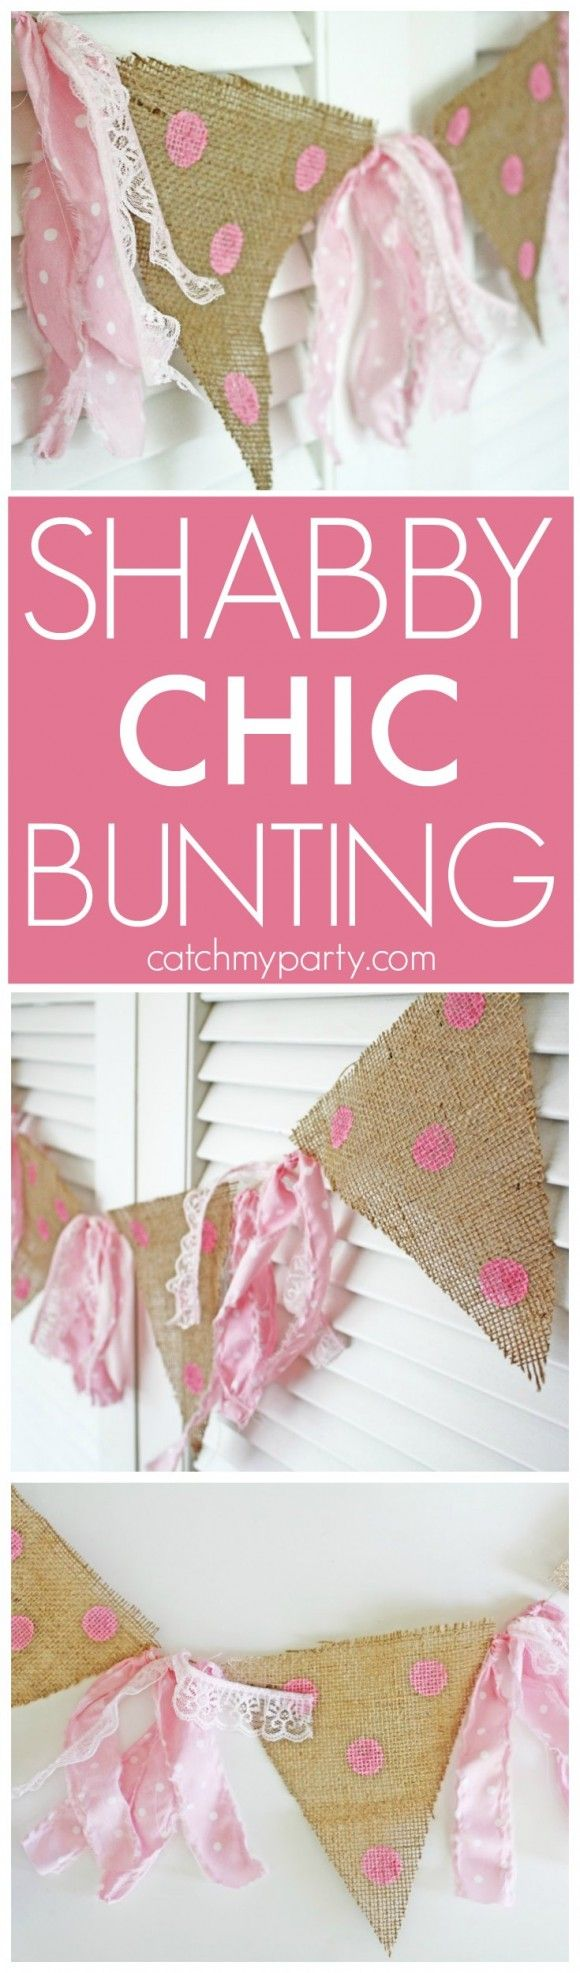 how to make easy wedding bunting